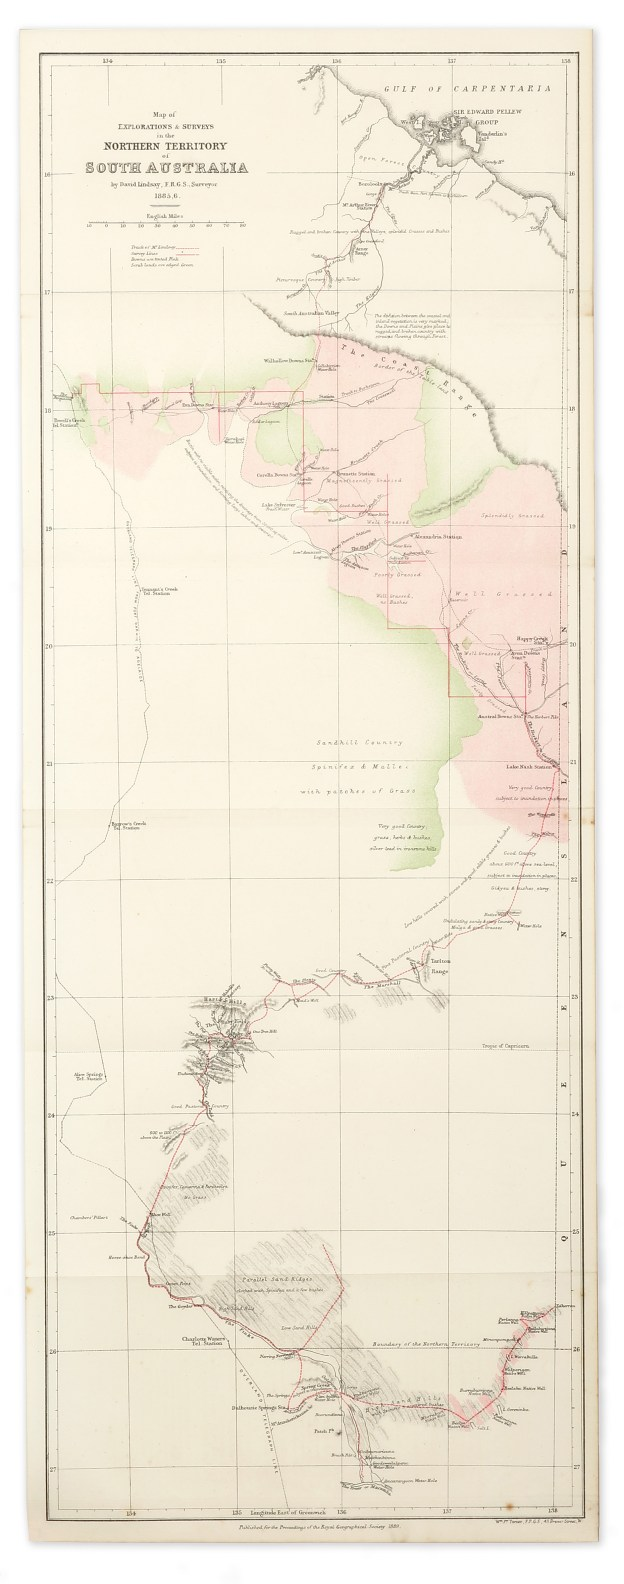 Map of Explorations & Surveys in the Northern Territory of South Australia by David Lindsay, F.R.G.S. Surveyor 1885-6. - Antique Map from 1889